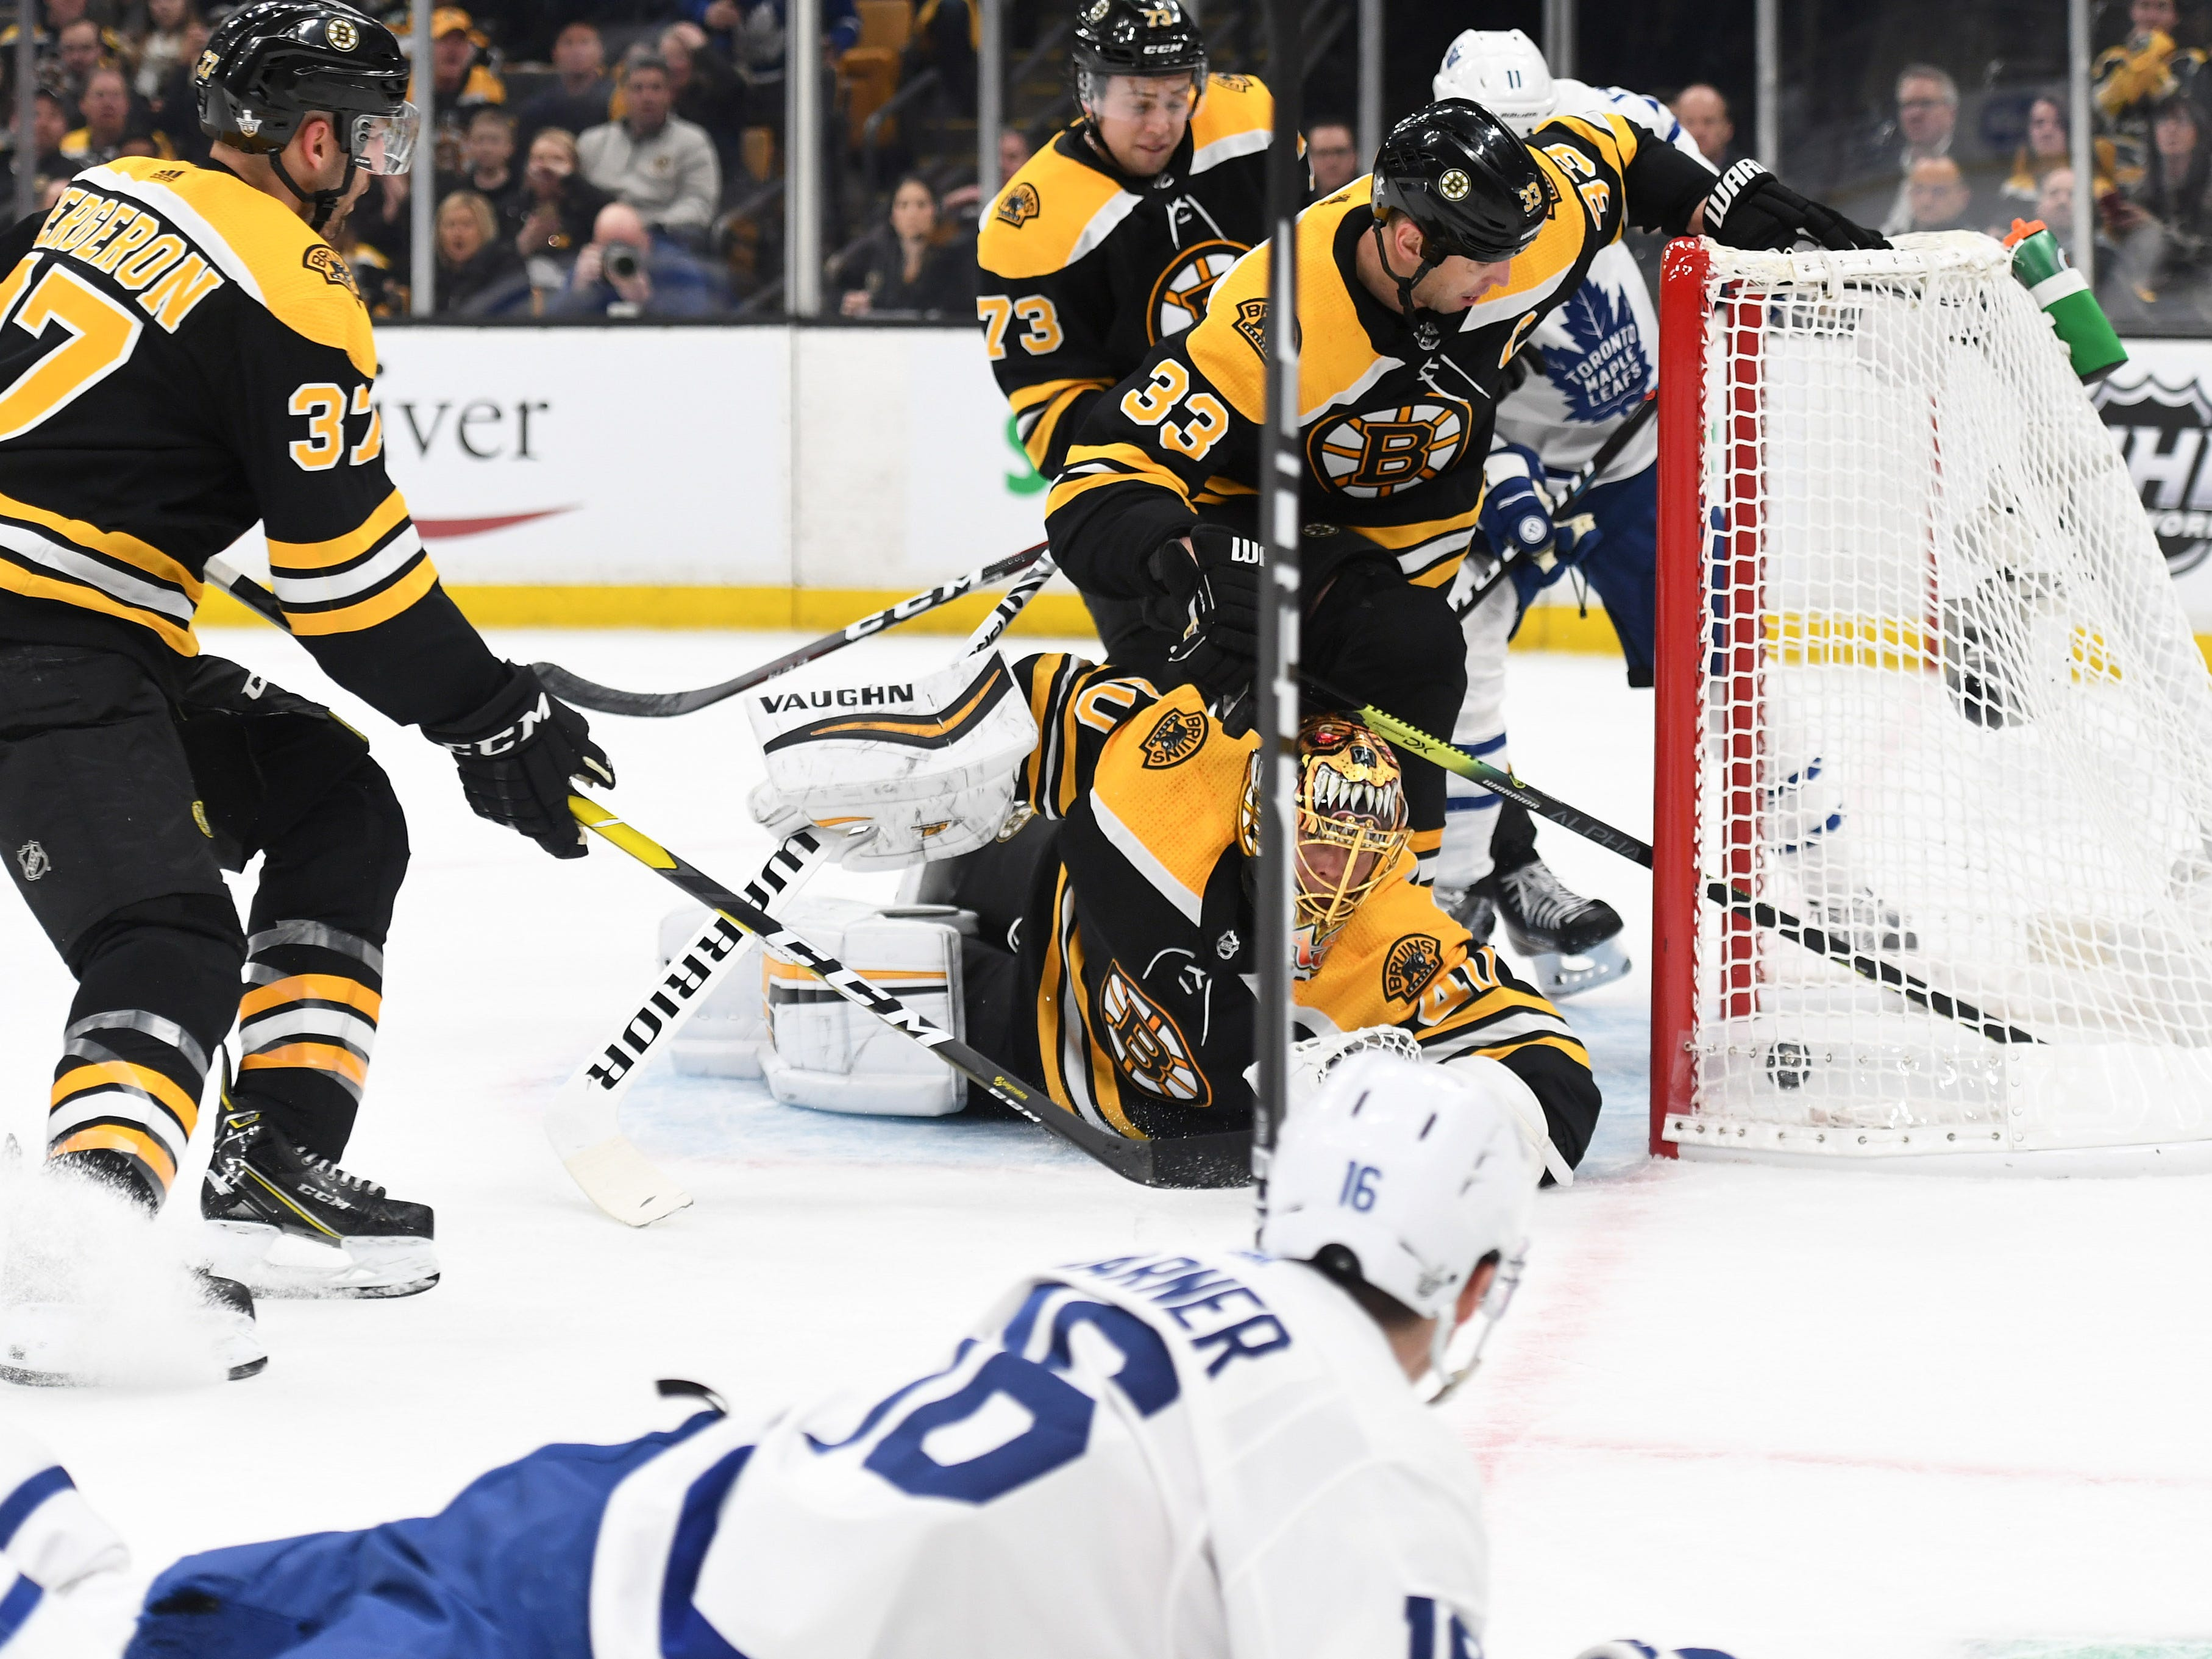 First round: Toronto Maple Leafs right wing Mitchell Marner scores a goal against the Boston Bruins during the first period in Game 1 at TD Garden. The Maple Leafs won the game, 4-1.